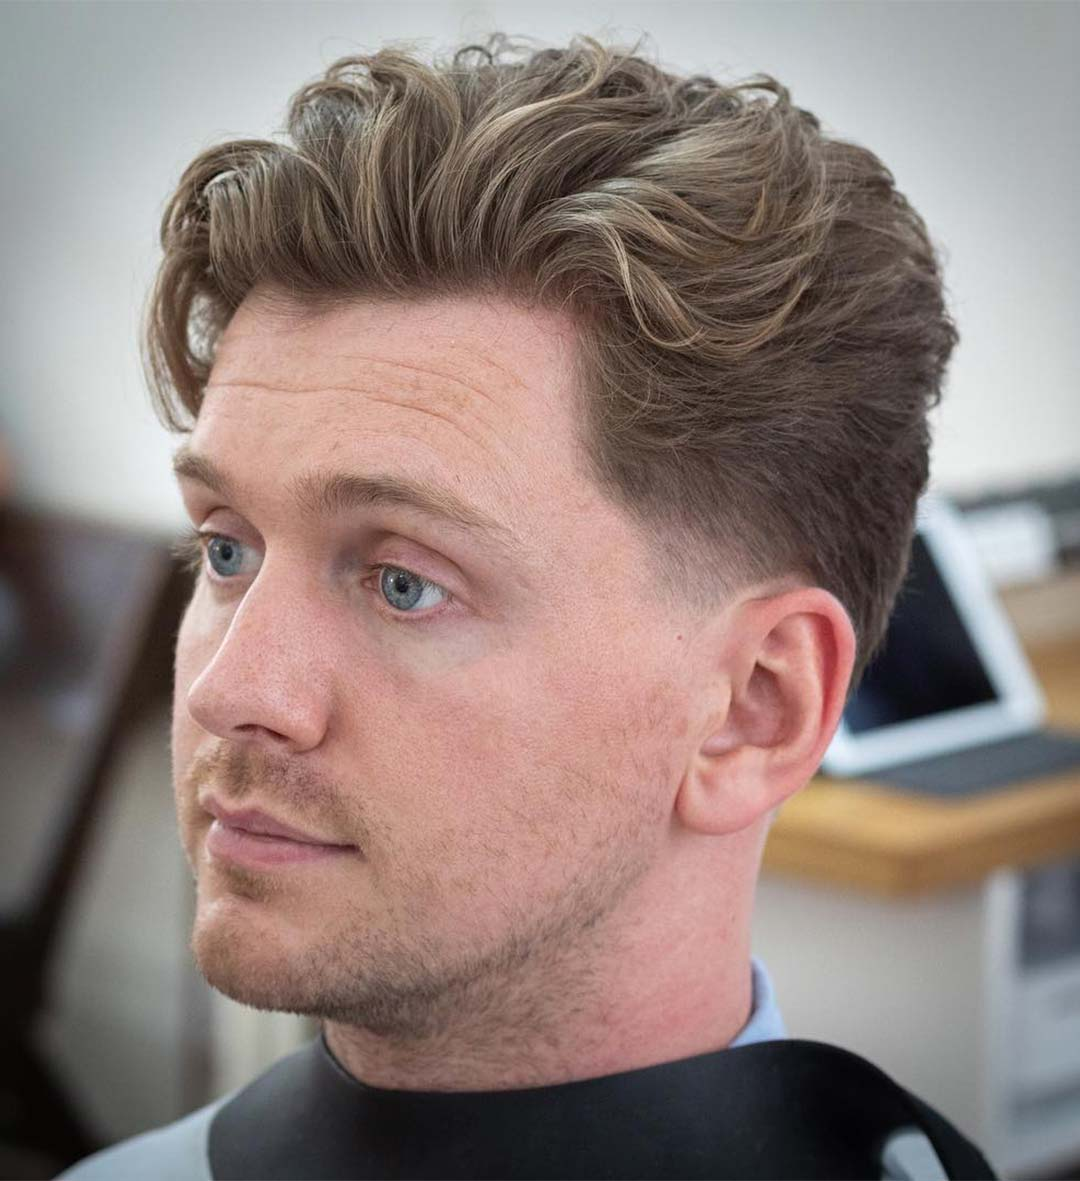 Wavy Hair with Low Taper